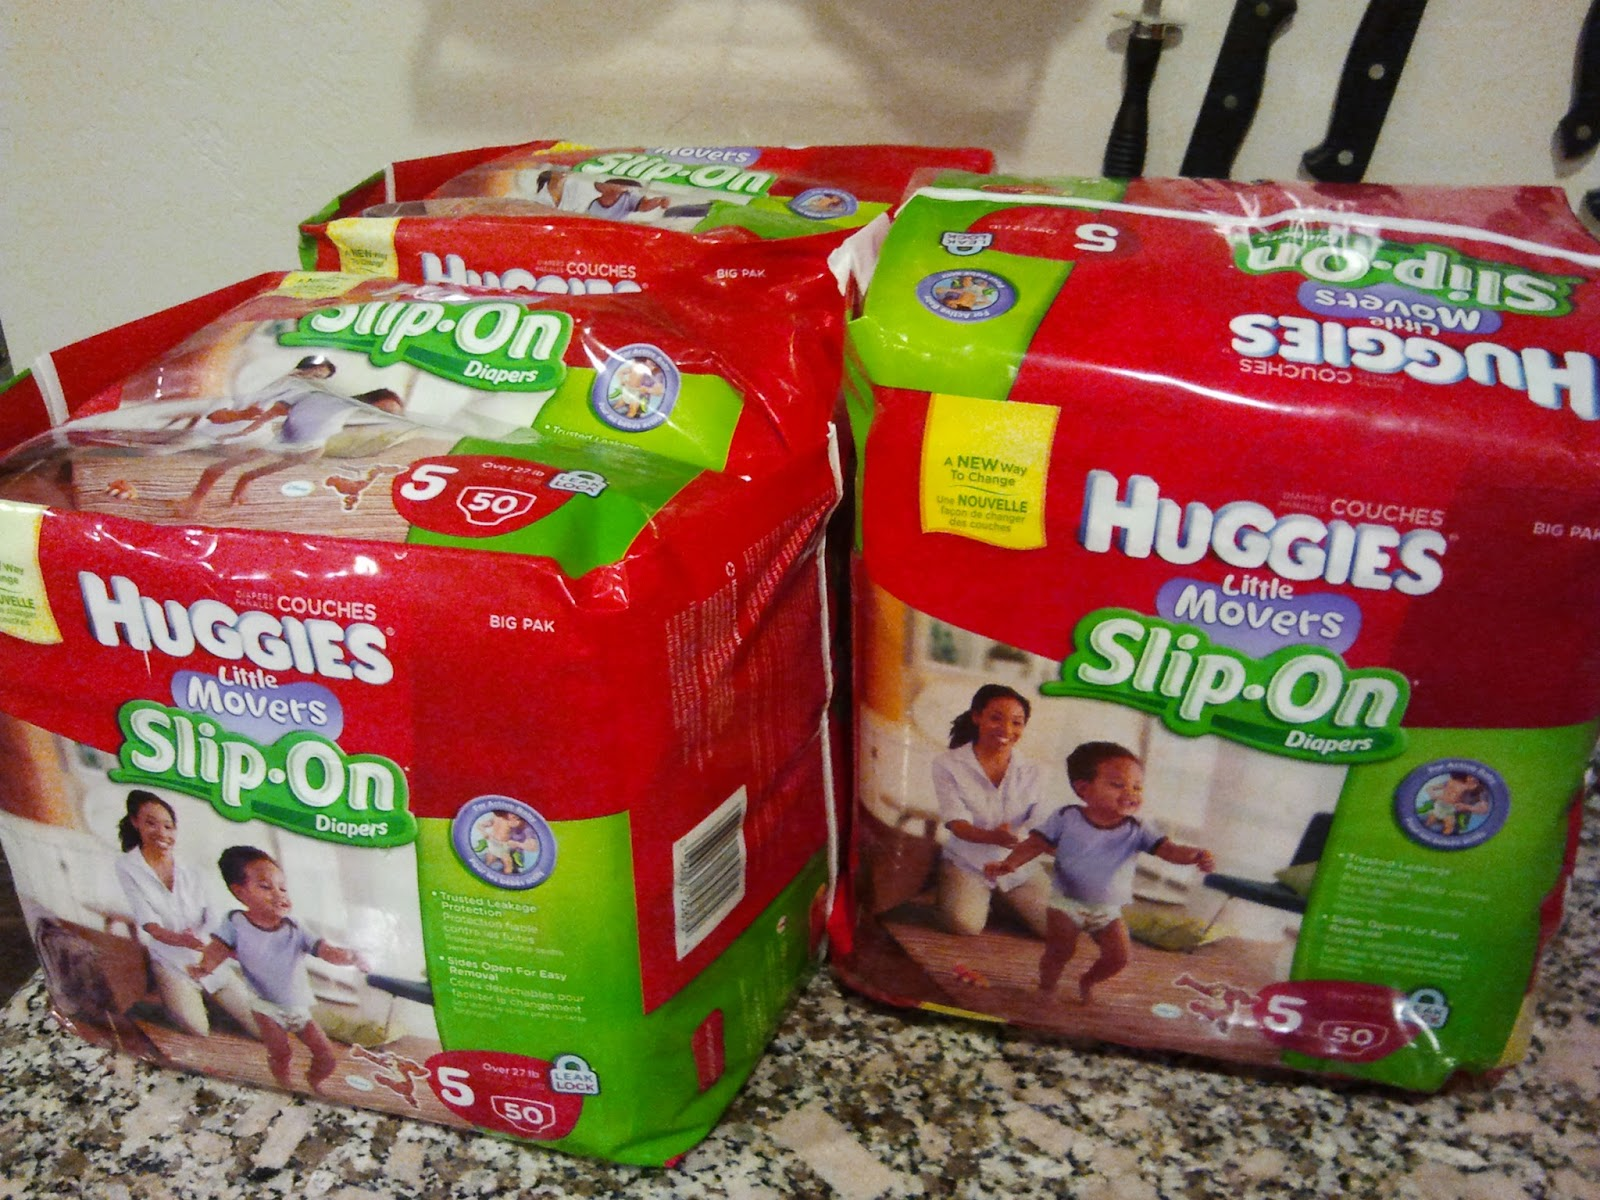 Huggies Box 19.79 X 3 = .37